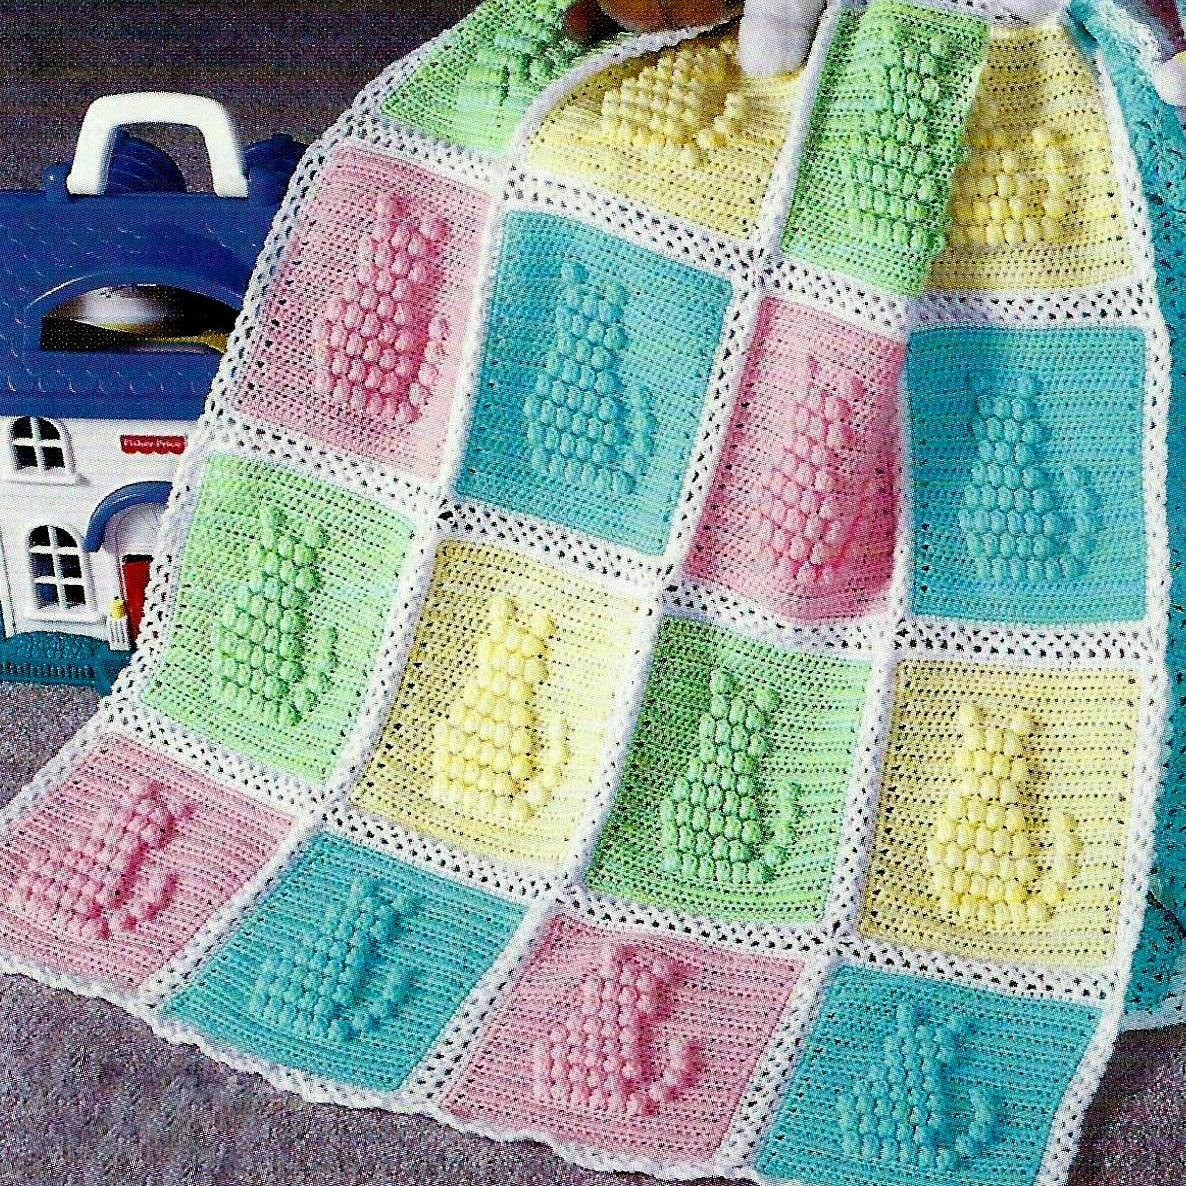 Vintage Crochet Pattern Kitty Cat Afghan